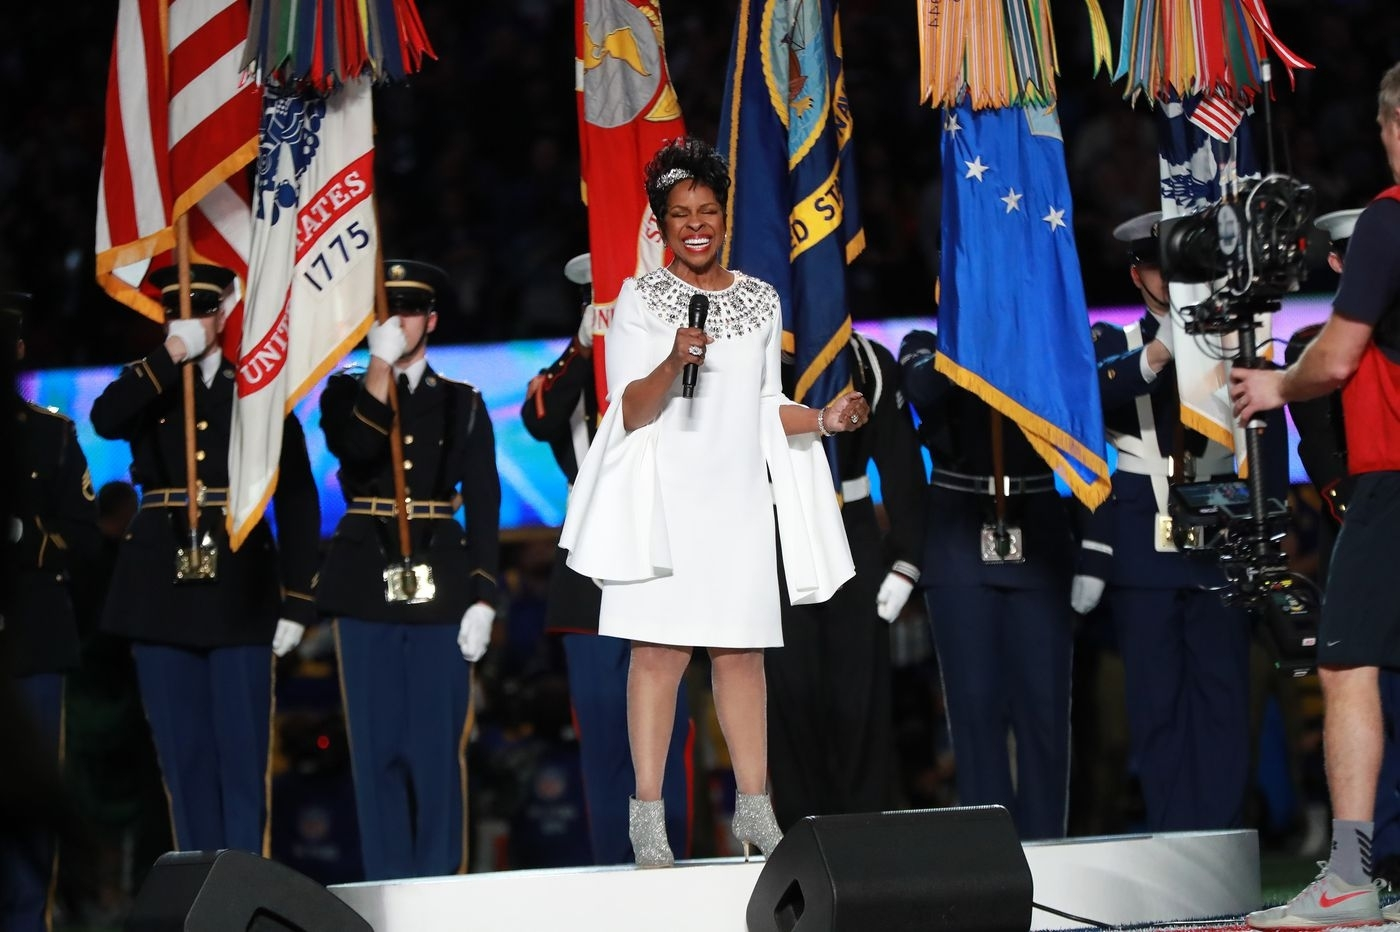 Super Bowl 2019: The Gladys Knight Controversy, And How Some in Gladys Knight Super Bowl 2019